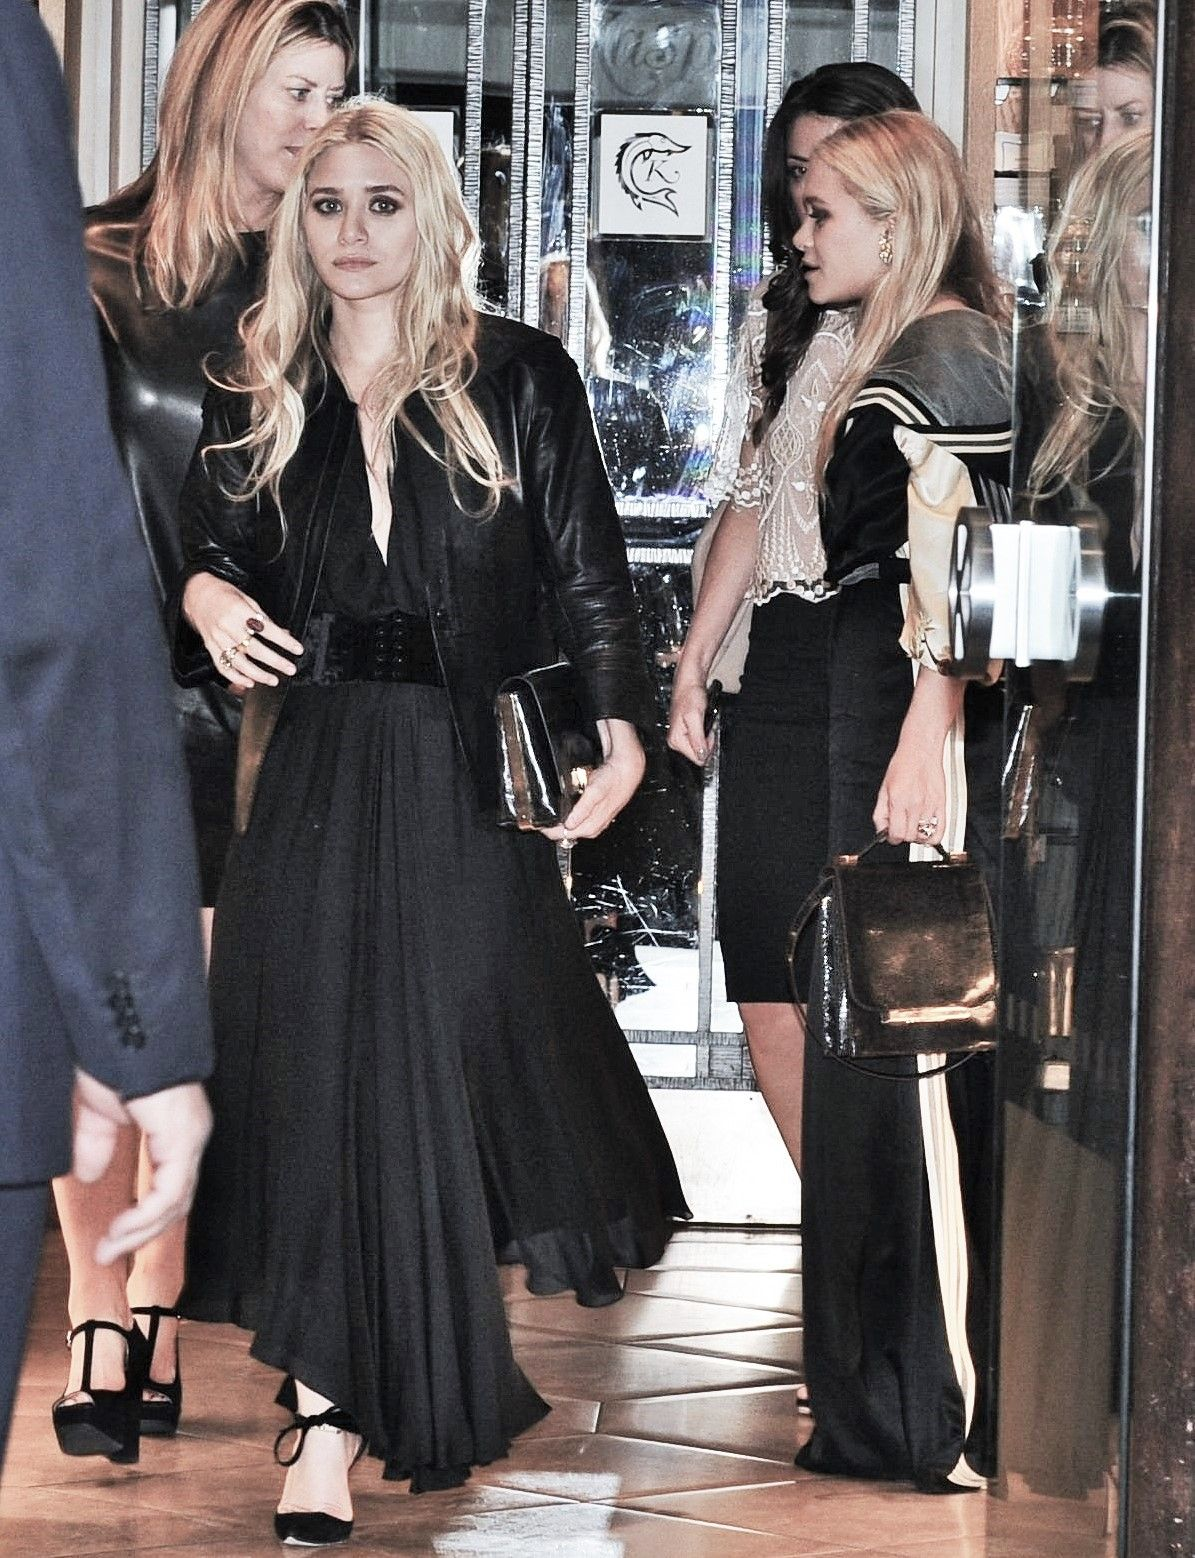 Olsen Twins Expand Their Fashion Empire Buying Stake inBeachMint picture